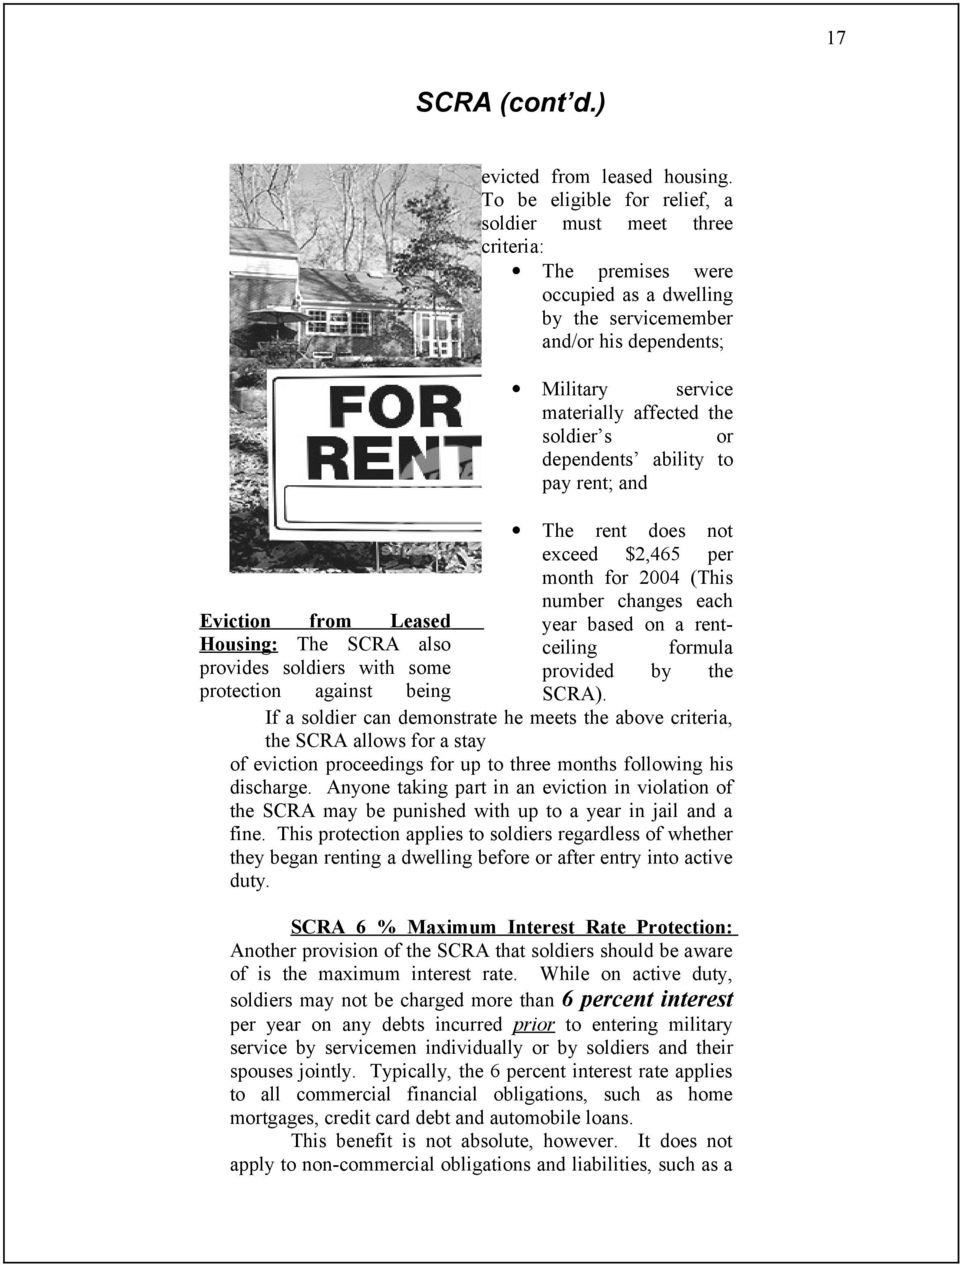 or dependents ability to pay rent; and The rent does not exceed $2,465 per month for 2004 (This number changes each Eviction from Leased year based on a renthousing: The SCRA also ceiling formula